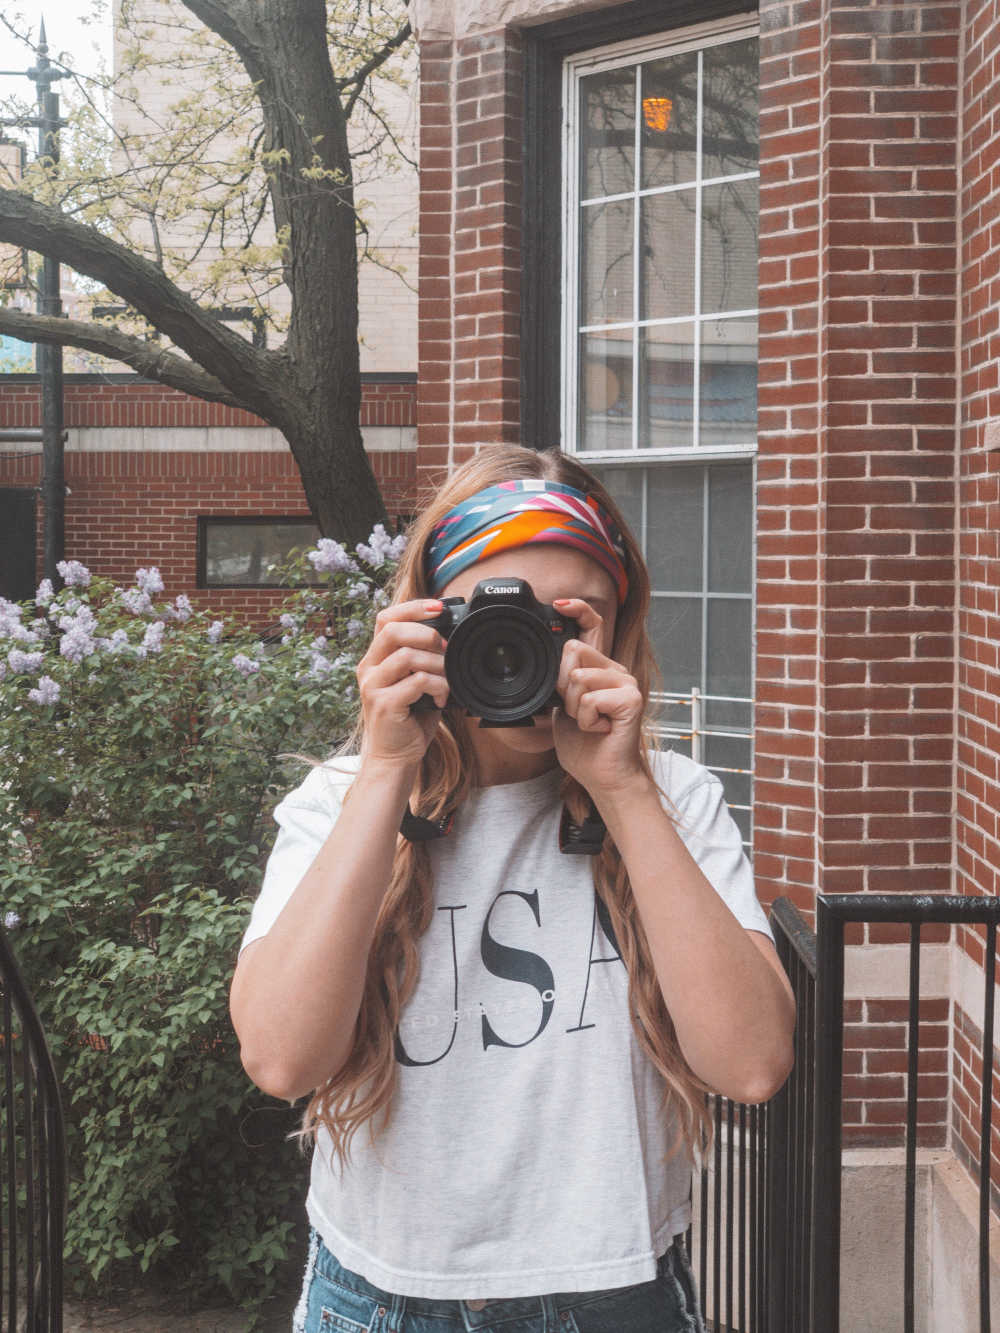 caitlin patton, chicago blogger, take a photo with a canon camera to post on Instagram